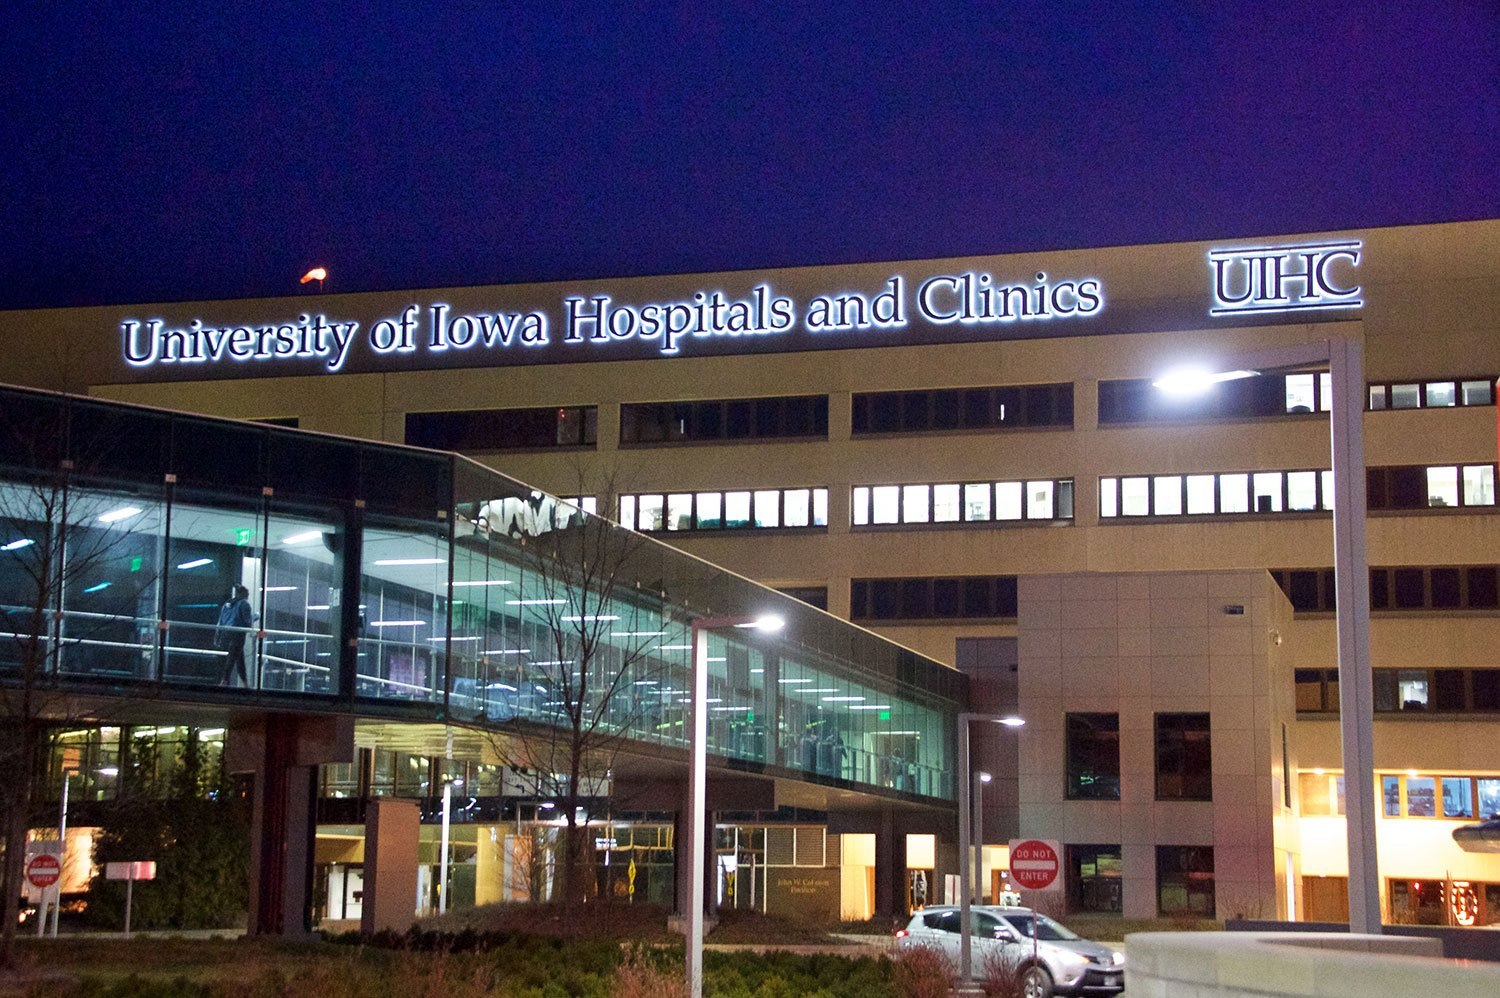 University of iowa hospitals clinics university of iowa university of iowa hospitals clinics university of iowa hospitals clinics malvernweather Gallery